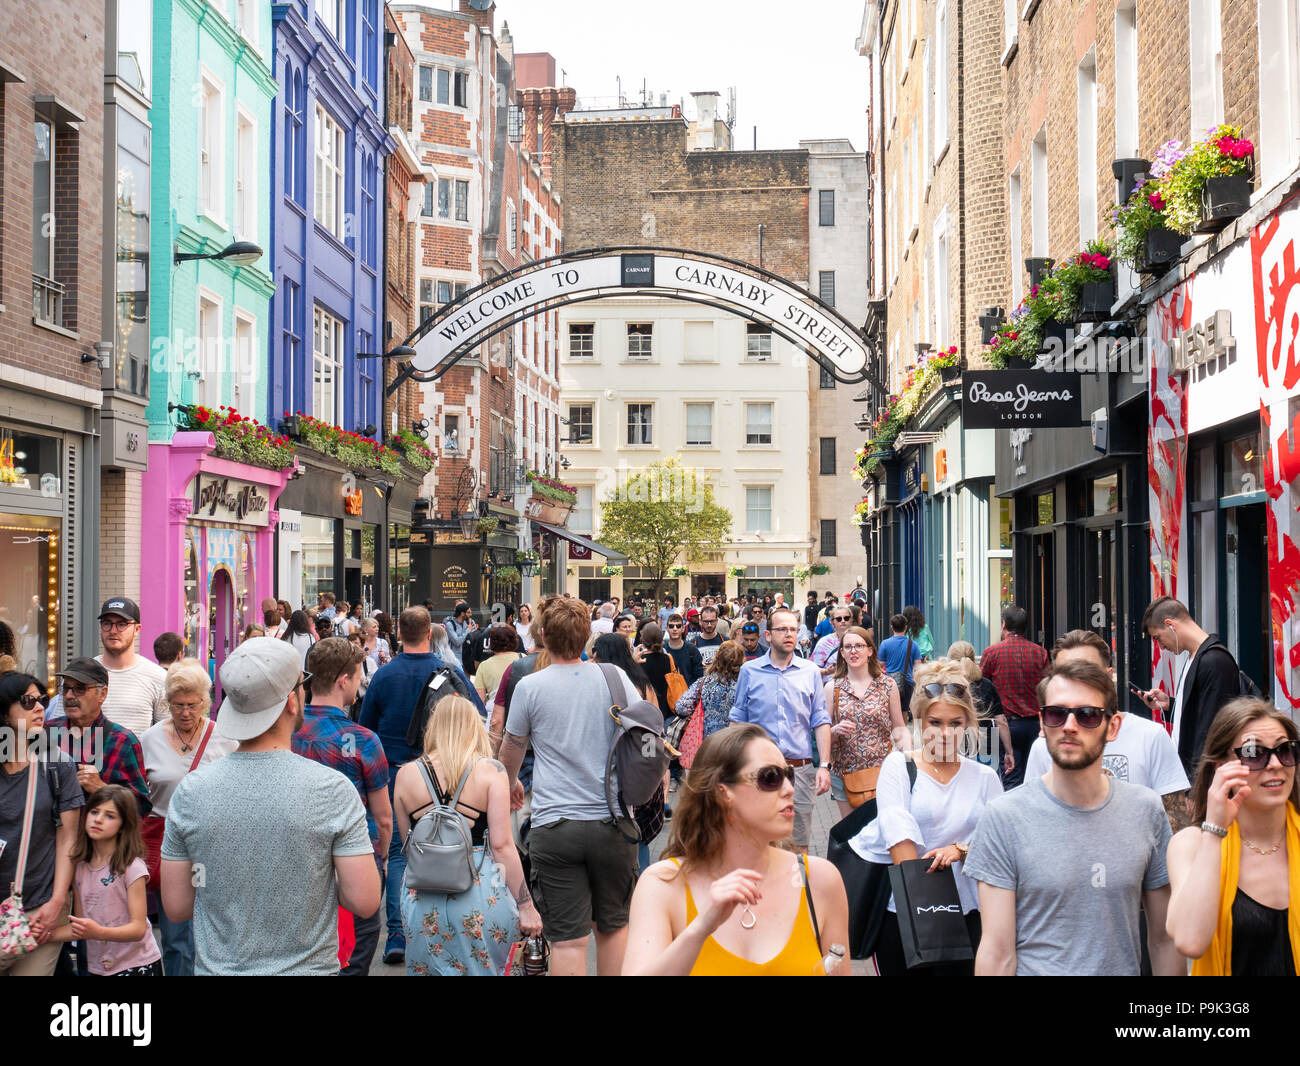 Carnaby Street, London, UK Photo Stock